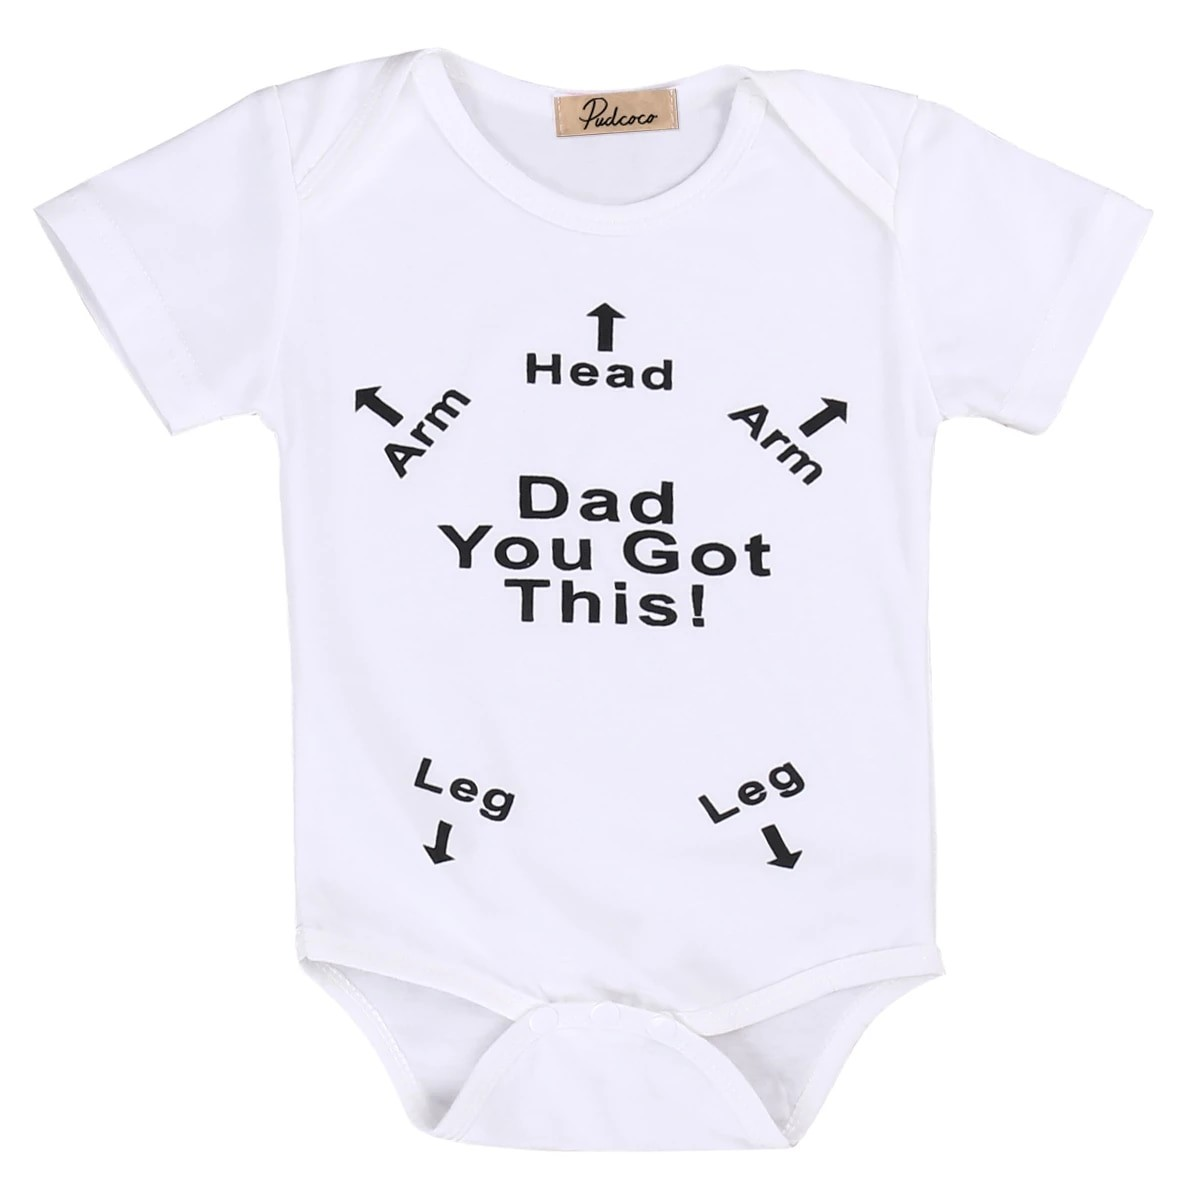 Baby bodysuits are Comfortable Clothing For Your Babies